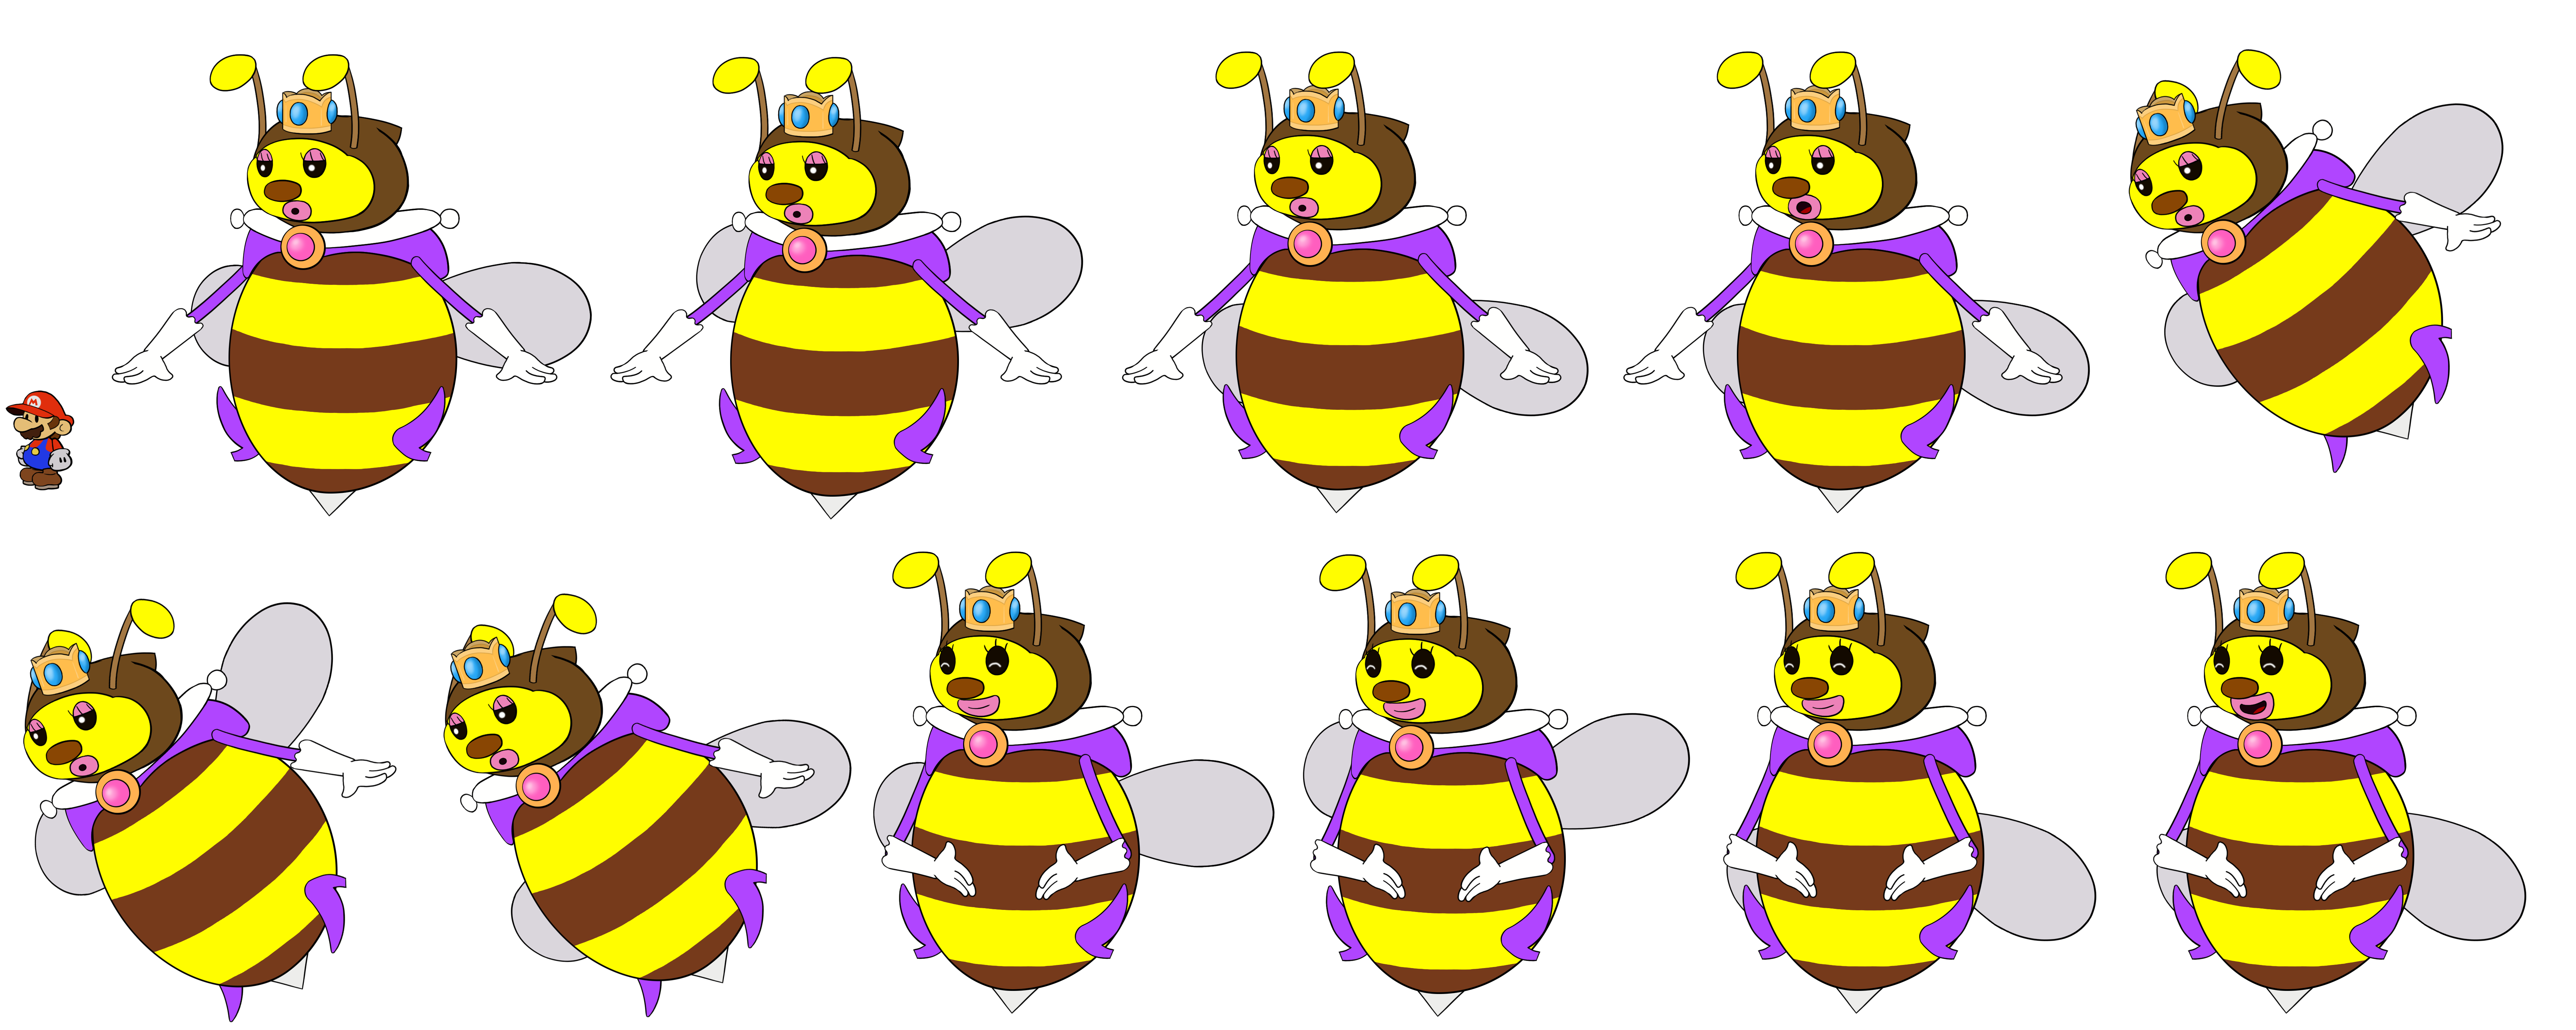 Honey Queen 1 (Paper Mario Style)